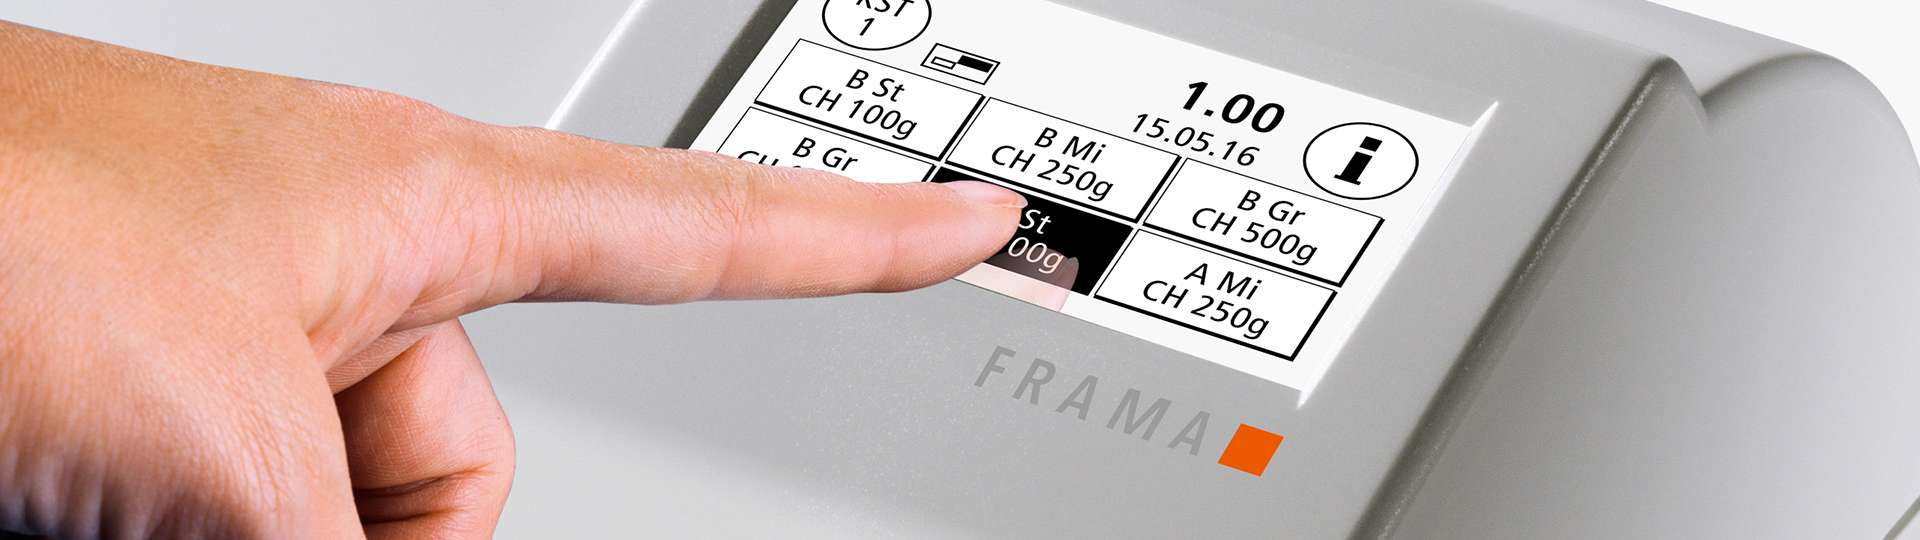 Frama franking machine F12